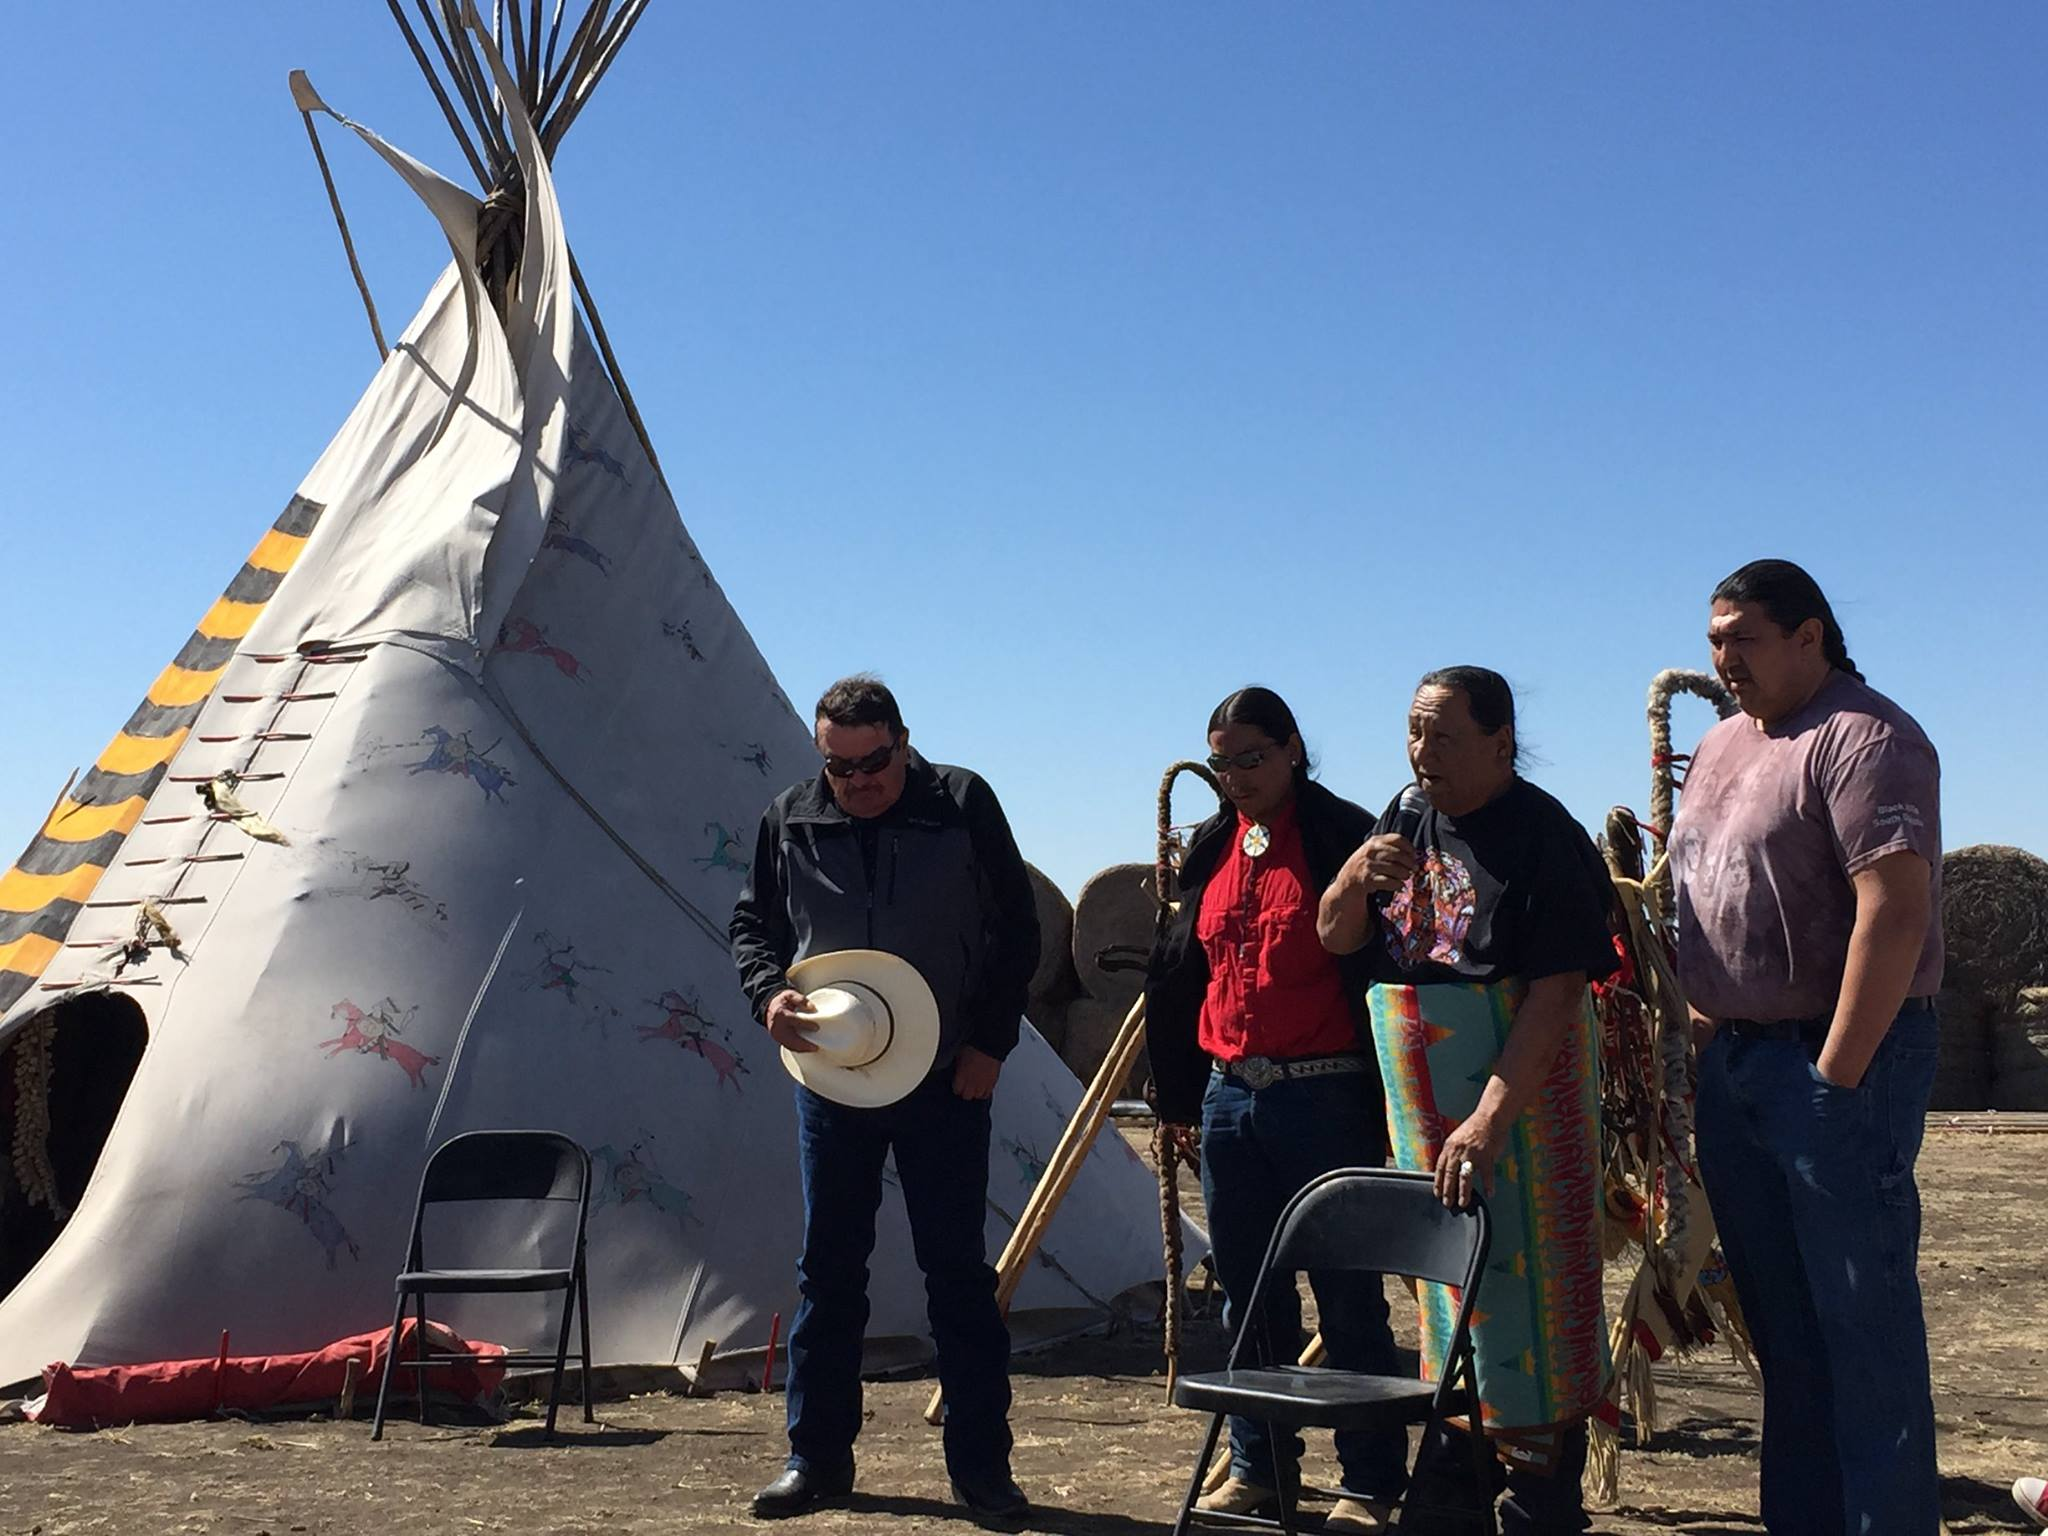 Lakota Country Times: Activists gear up for Keystone XL hearings